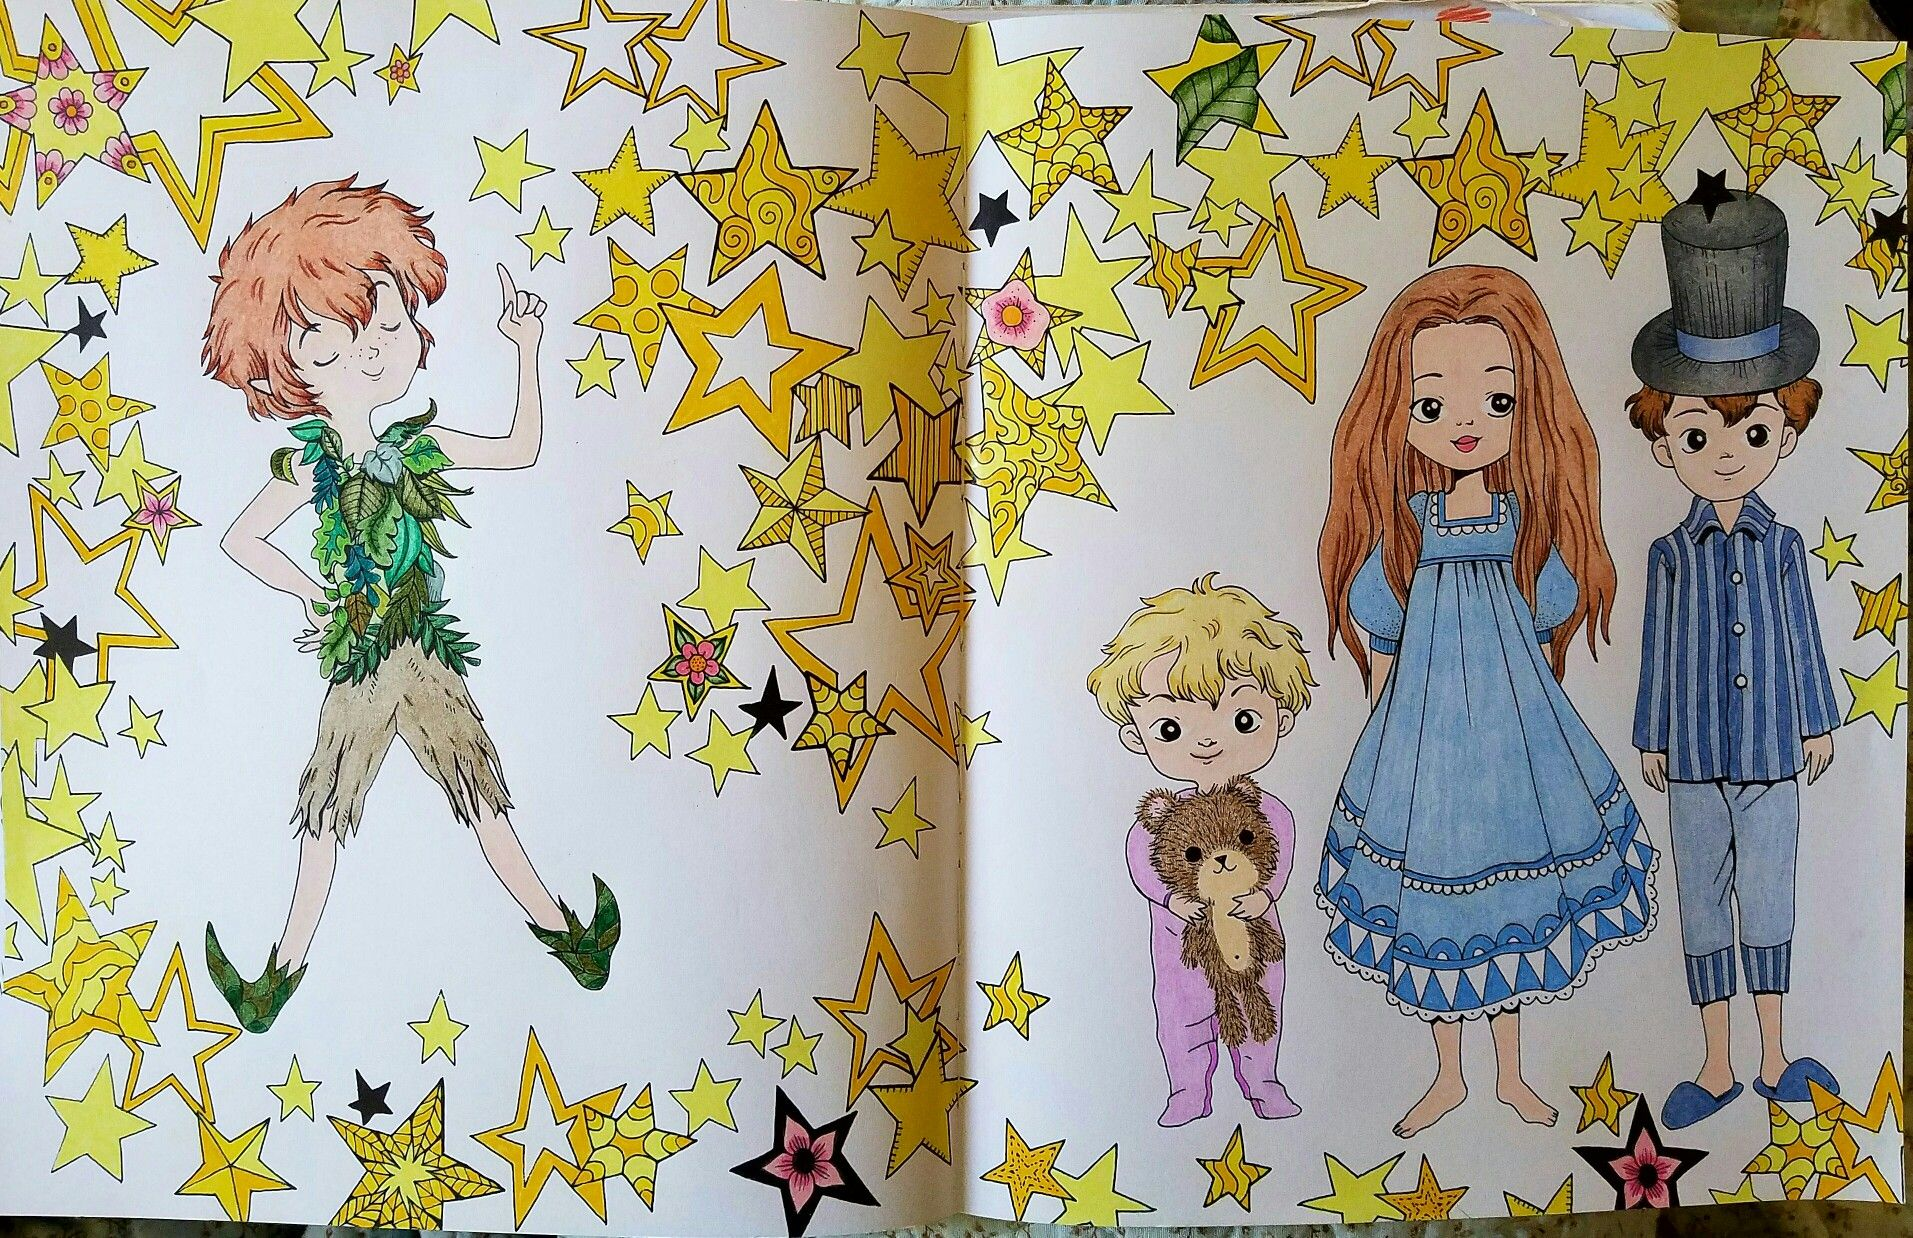 John, Michael, Wendy, & Peter Pan from Peter Pan by Fabiana ...